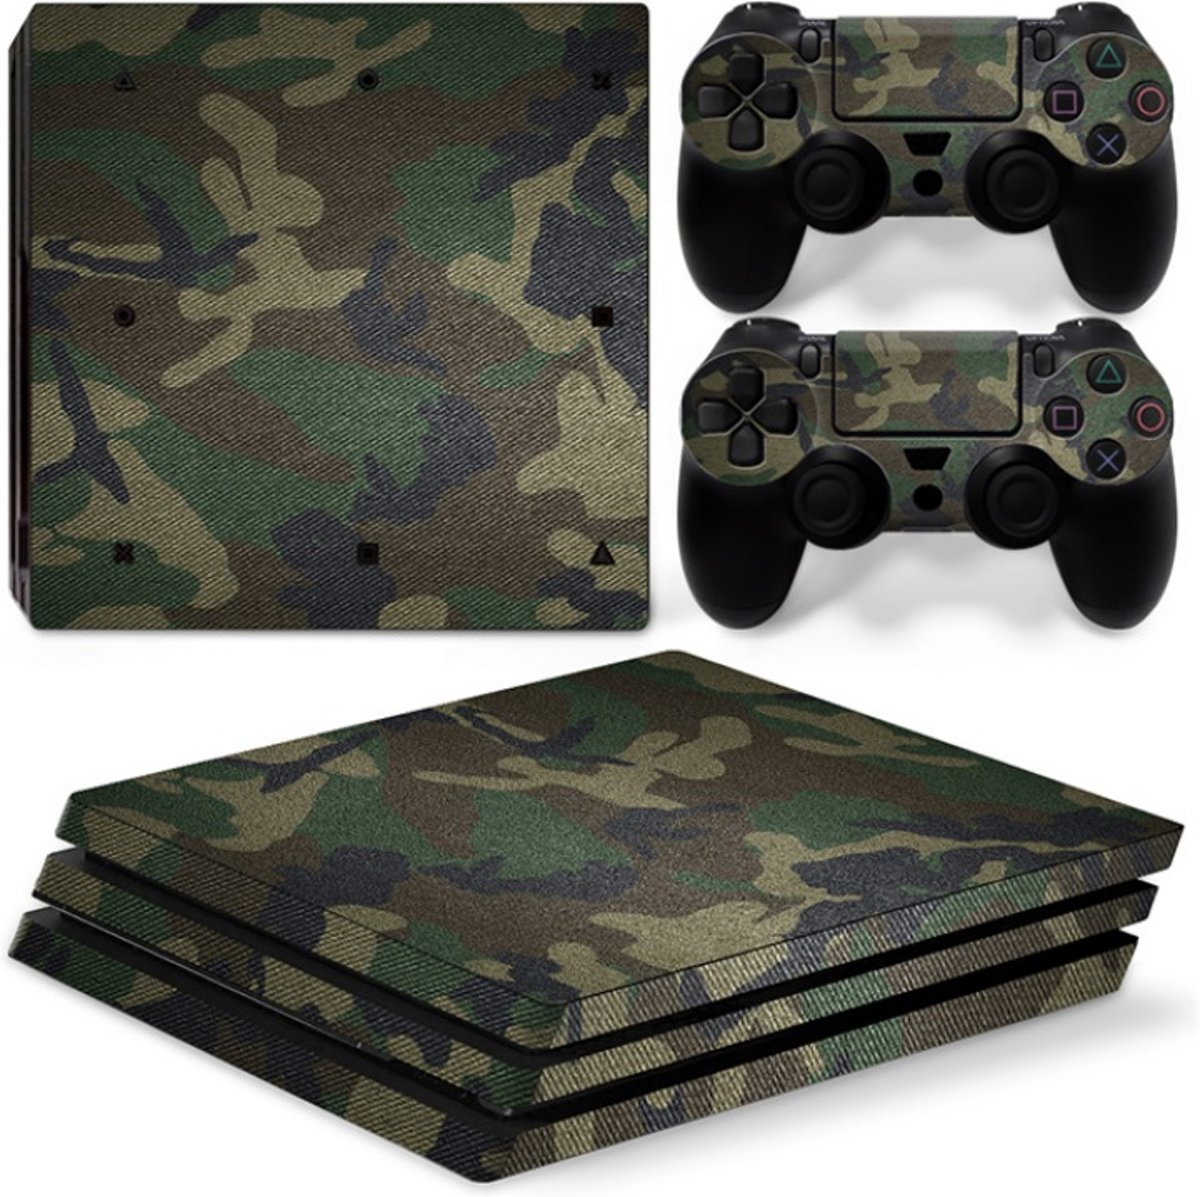 Playstation 4 Pro Sticker | Playstation 4 Pro Console Skin | Green Camo | Playstation 4 Pro Groene Camouflage Skin Sticker | Console Skin + 2 Controller Skins